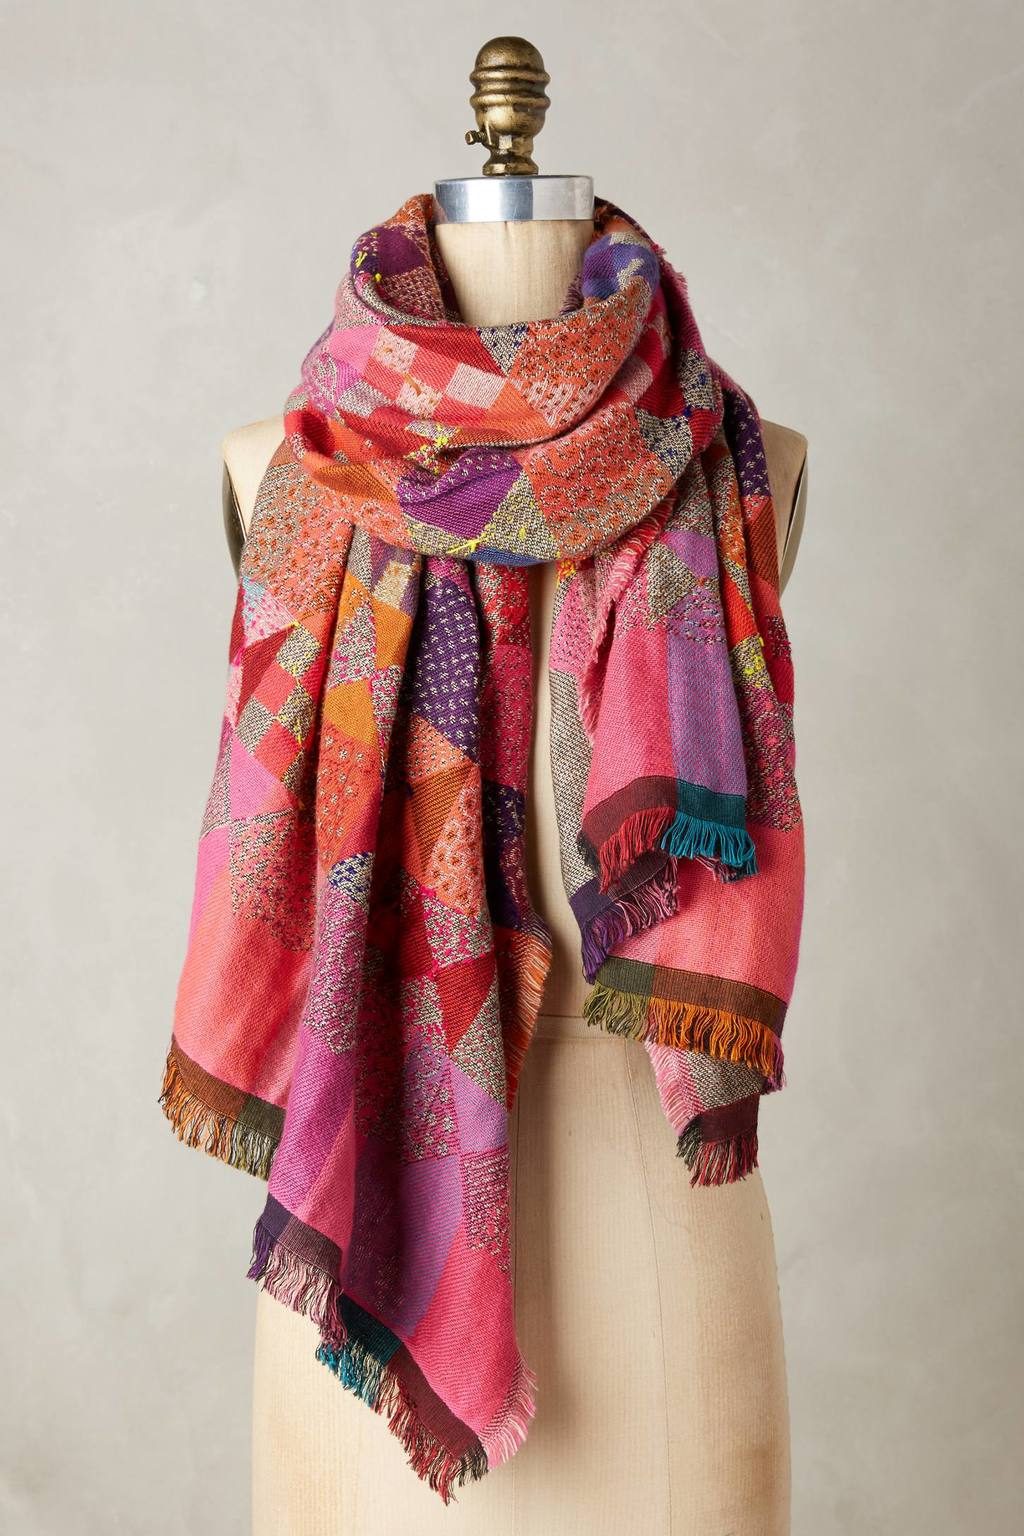 Tallgrass Scarf - predominant colour: pink; secondary colour: purple; occasions: casual; type of pattern: heavy; style: regular; size: standard; material: fabric; embellishment: fringing; pattern: patterned/print; multicoloured: multicoloured; season: a/w 2016; wardrobe: highlight